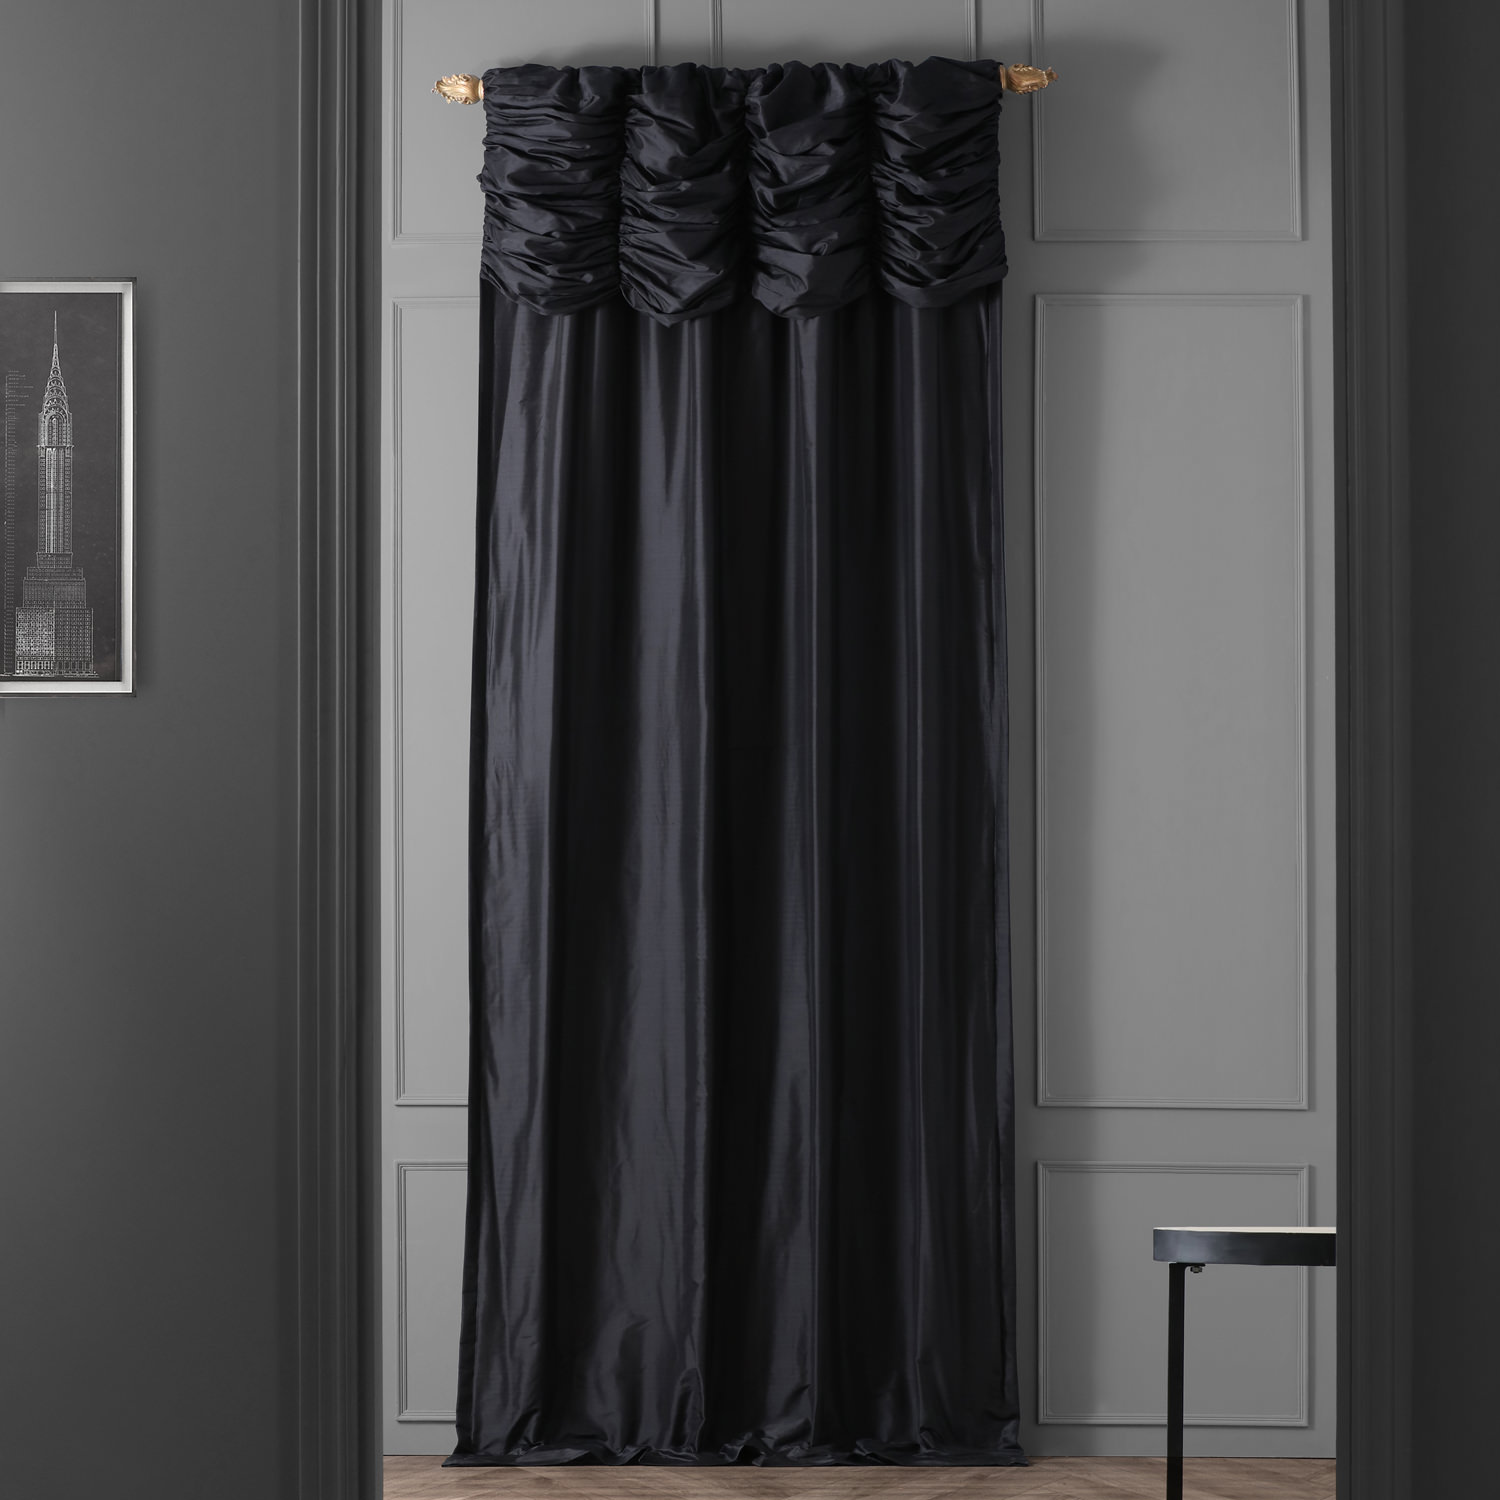 Ruched Midnight Black Thai Silk Curtain